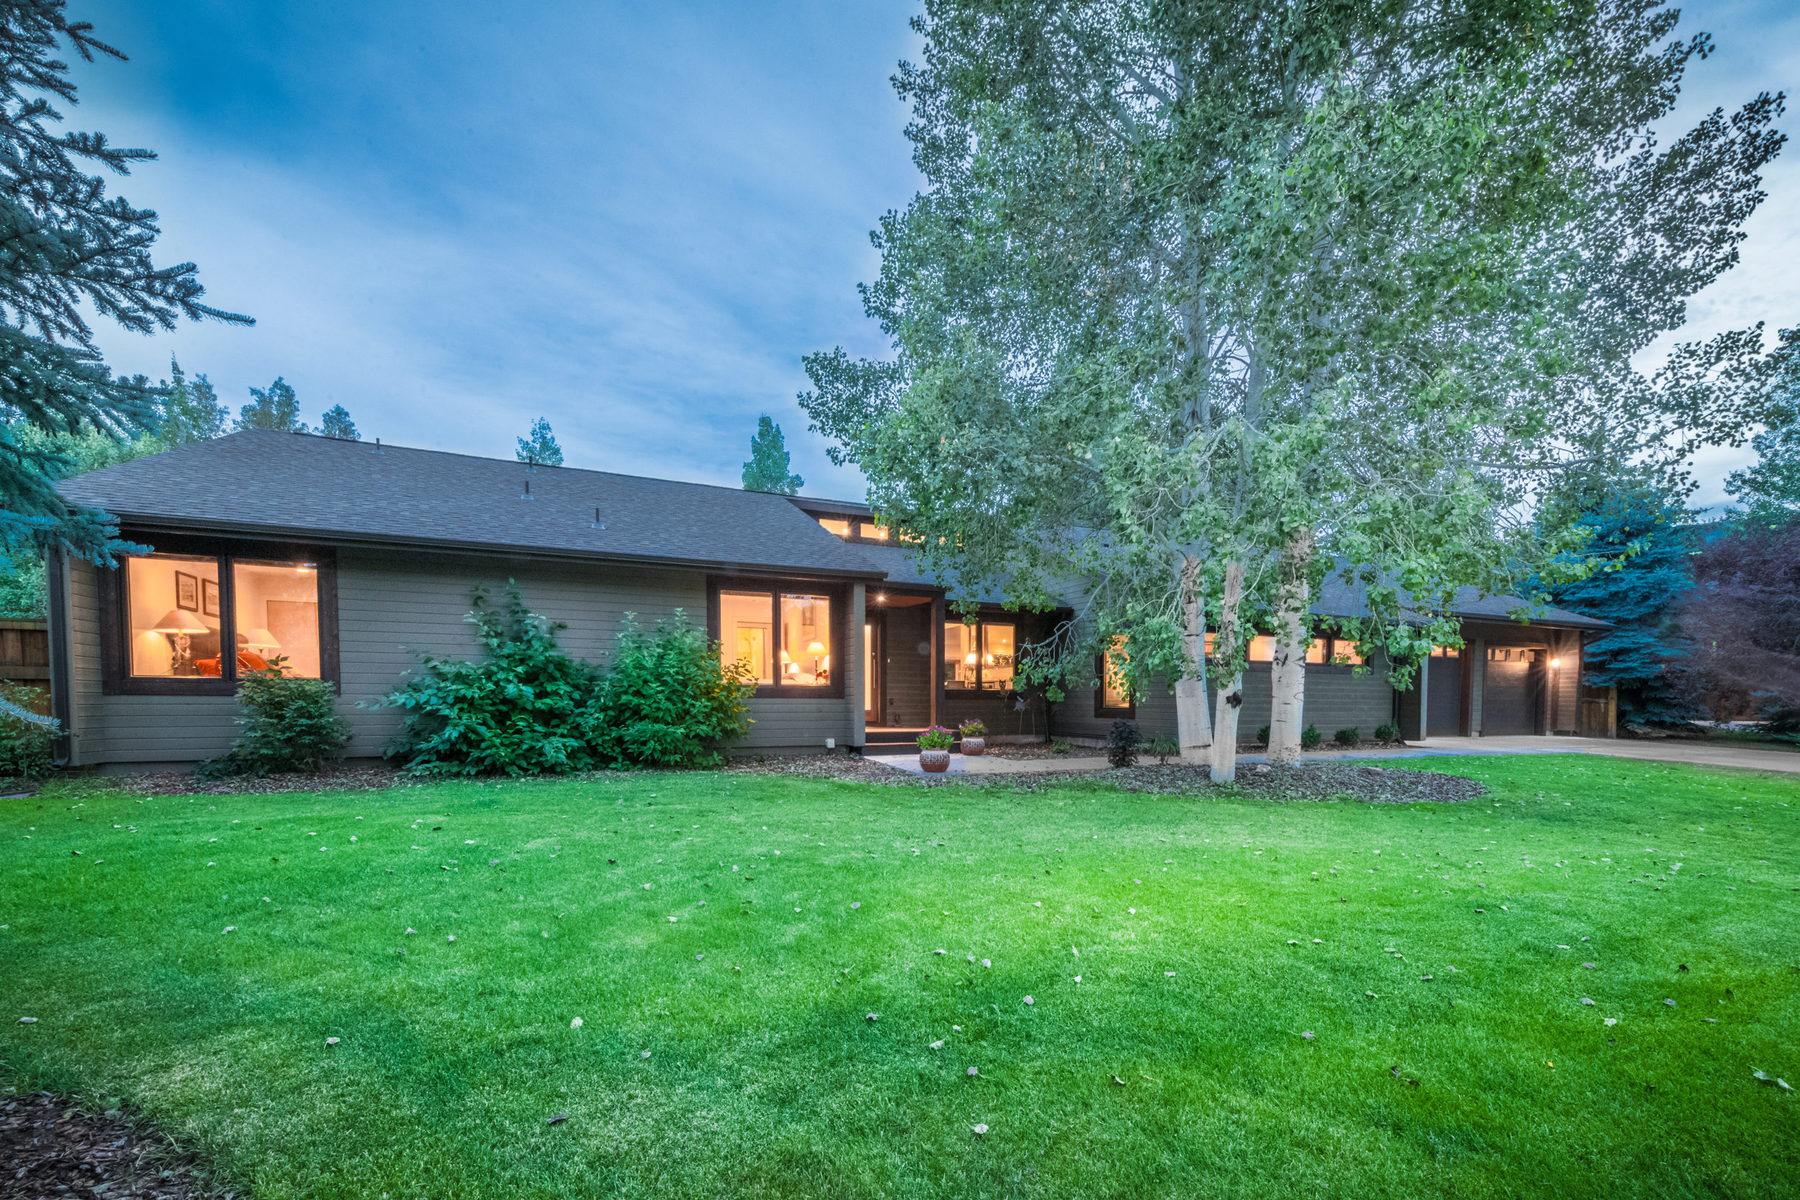 Single Family Home for Sale at Rare Commodity in Coveted Silver Springs 1475 Willow Ln Park City, Utah 84098 United States